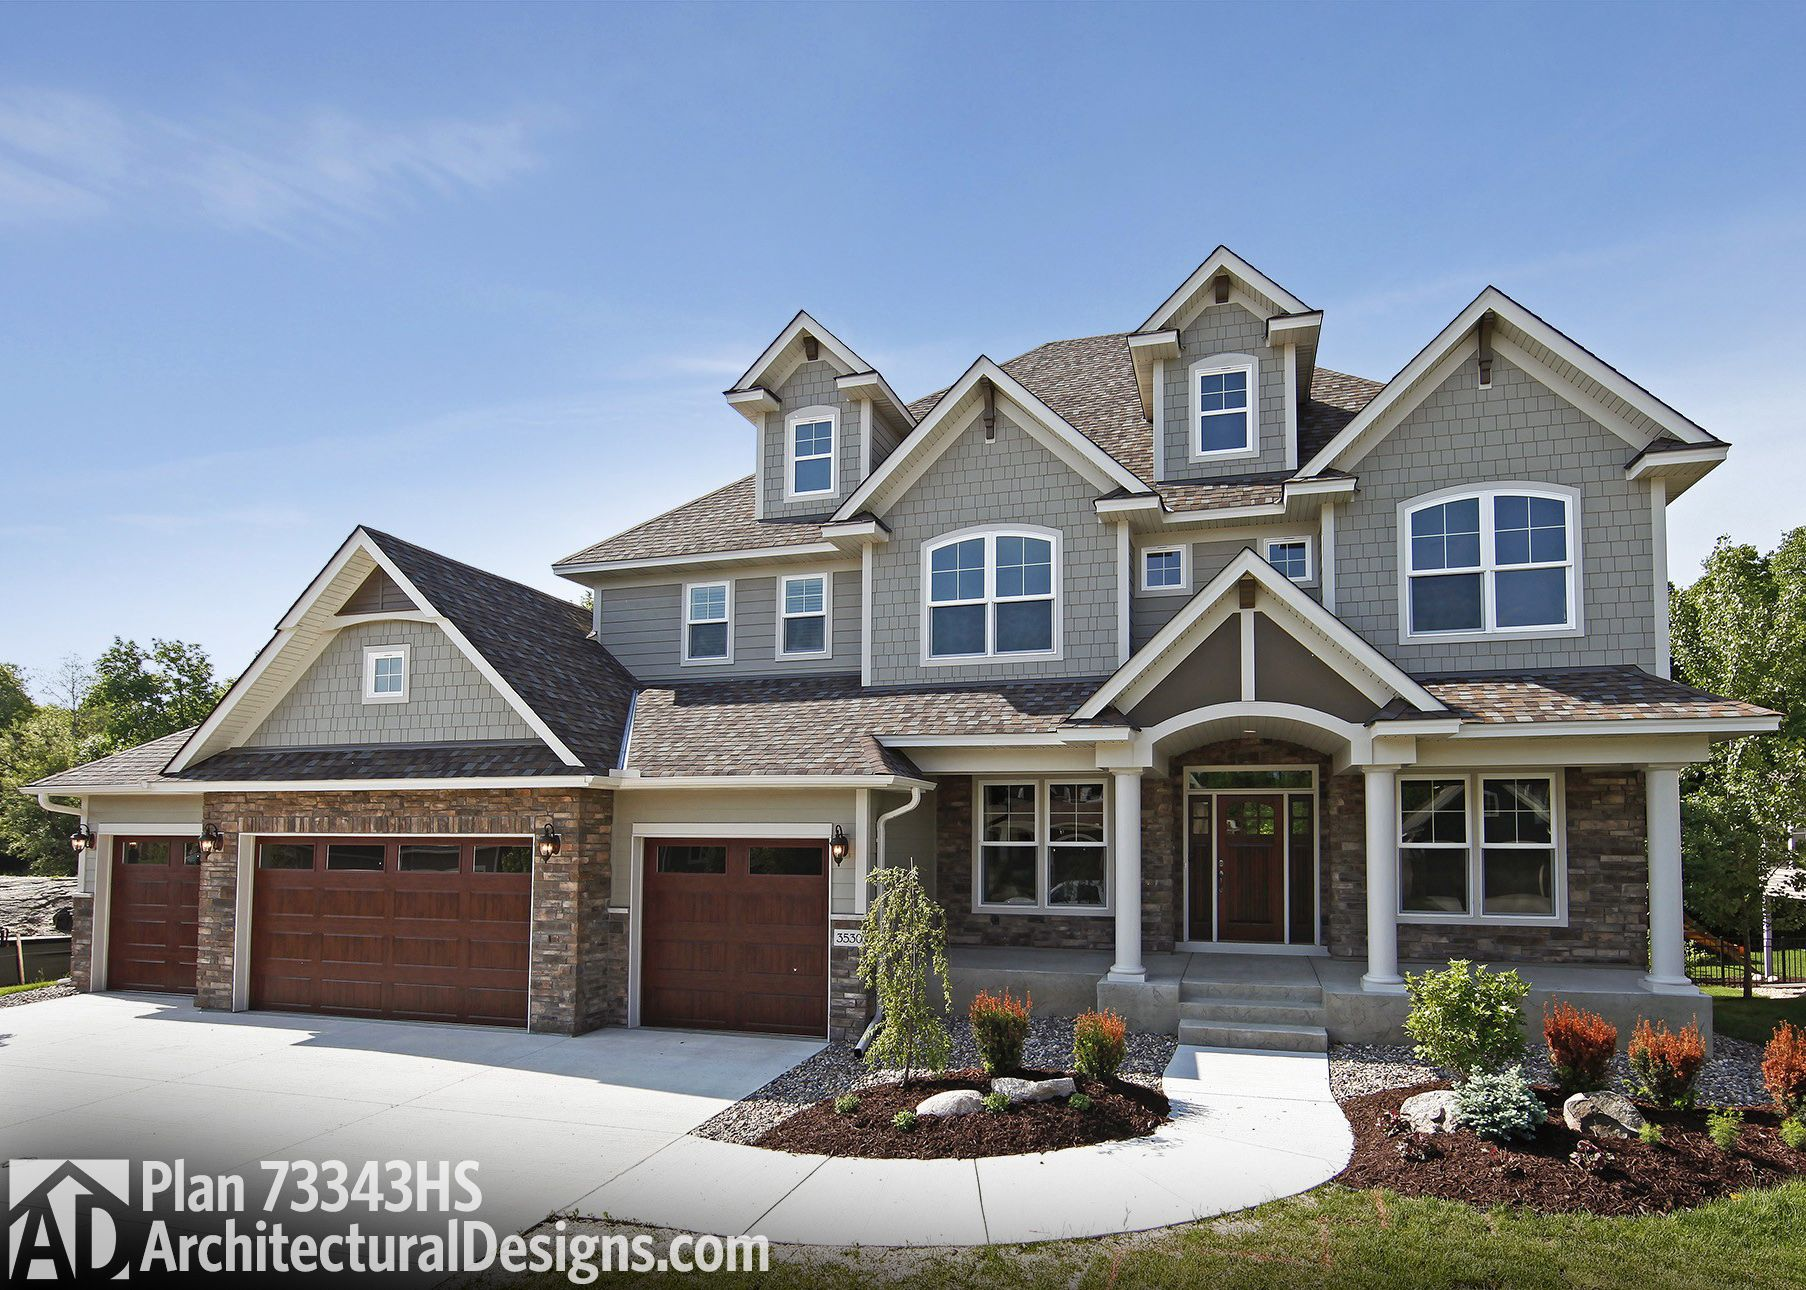 Plan 73343hs: Storybook House Plan With 4 Car Garage   For The Home